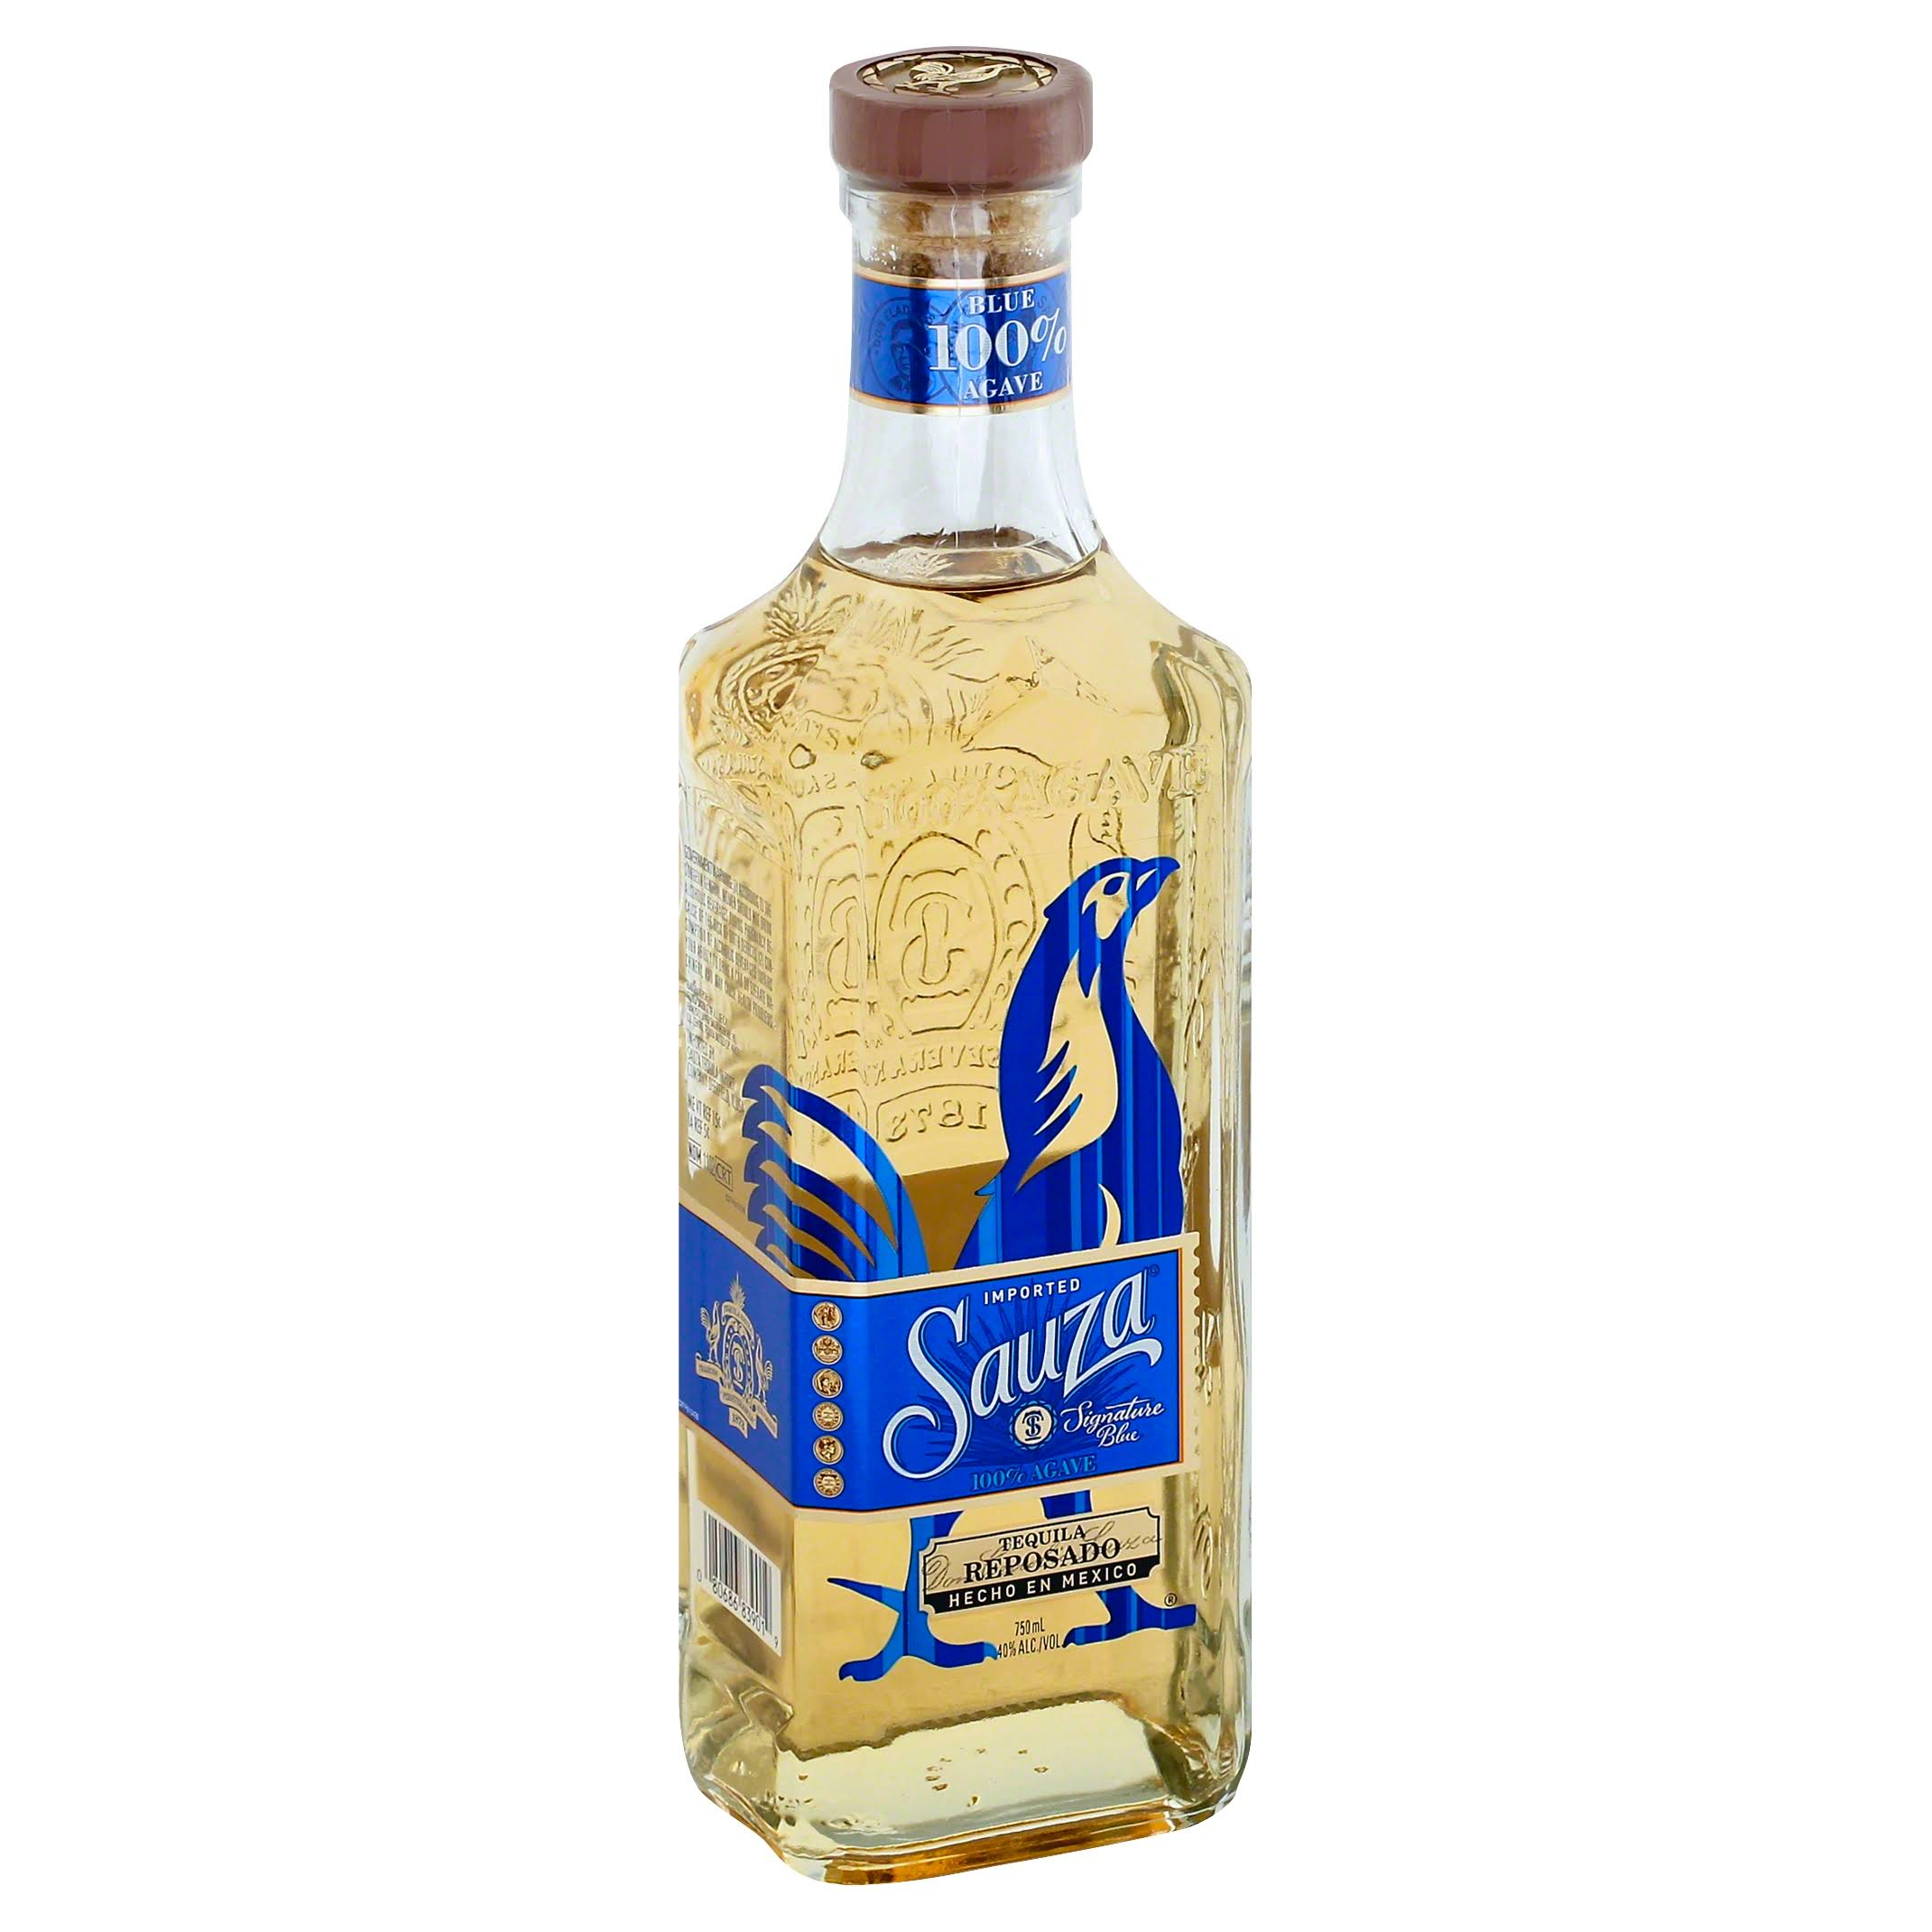 Sauza Signature Blue Reposado Tequila - 750ml